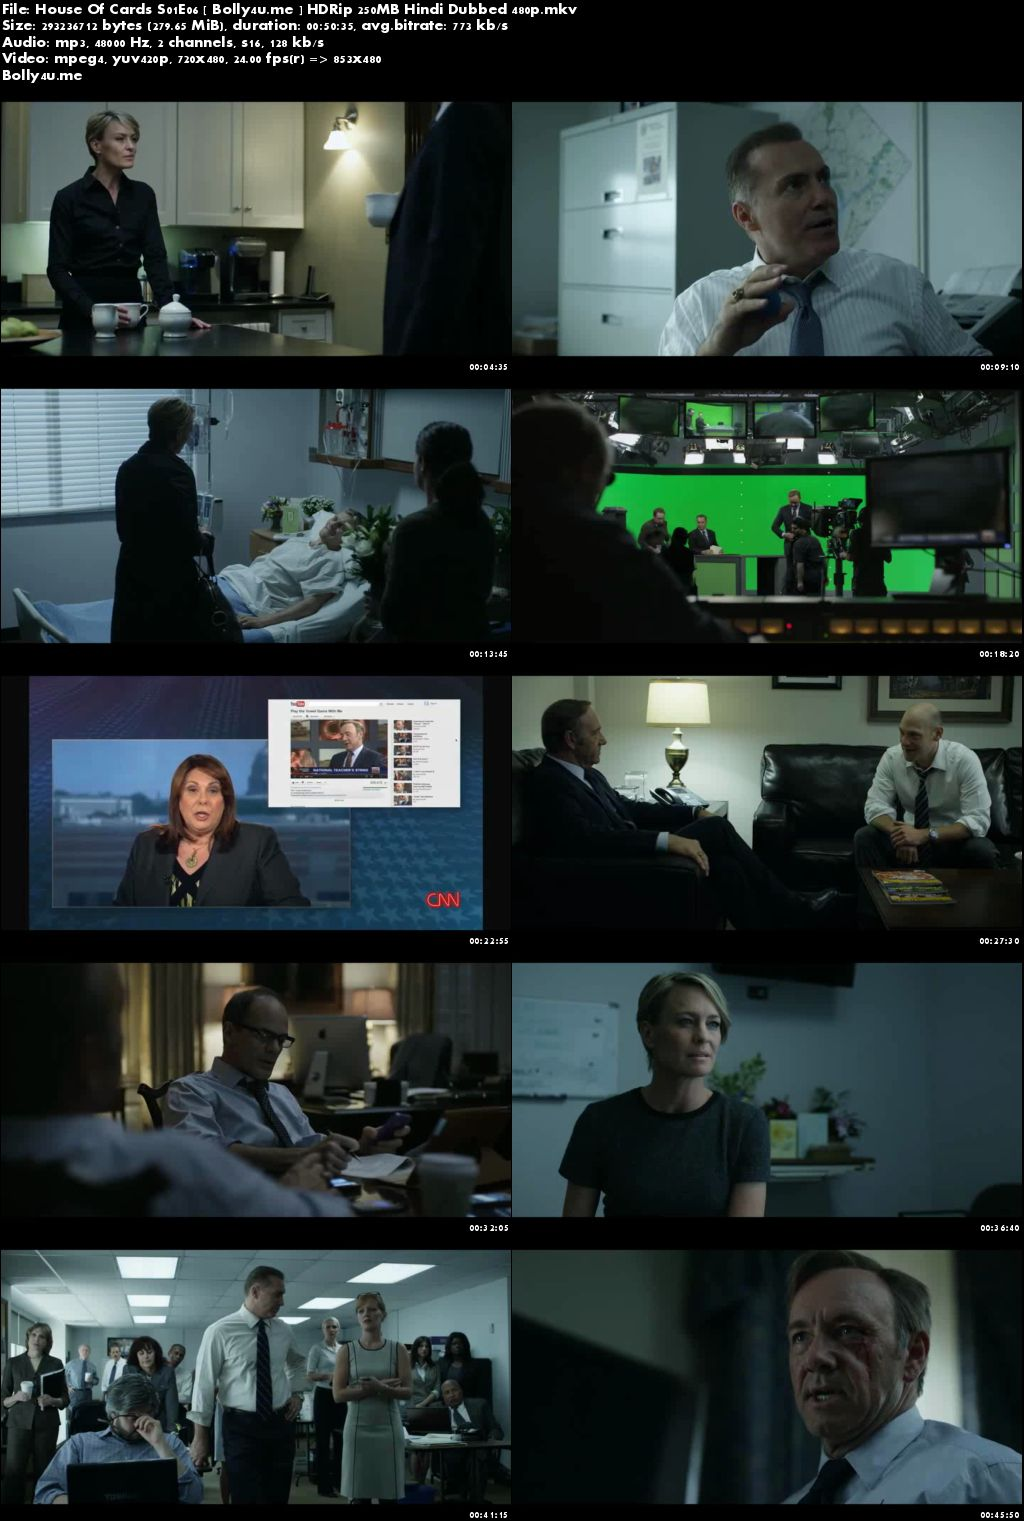 House Of Cards S01E06 HDRip 250MB Hindi Dubbed 480p Download